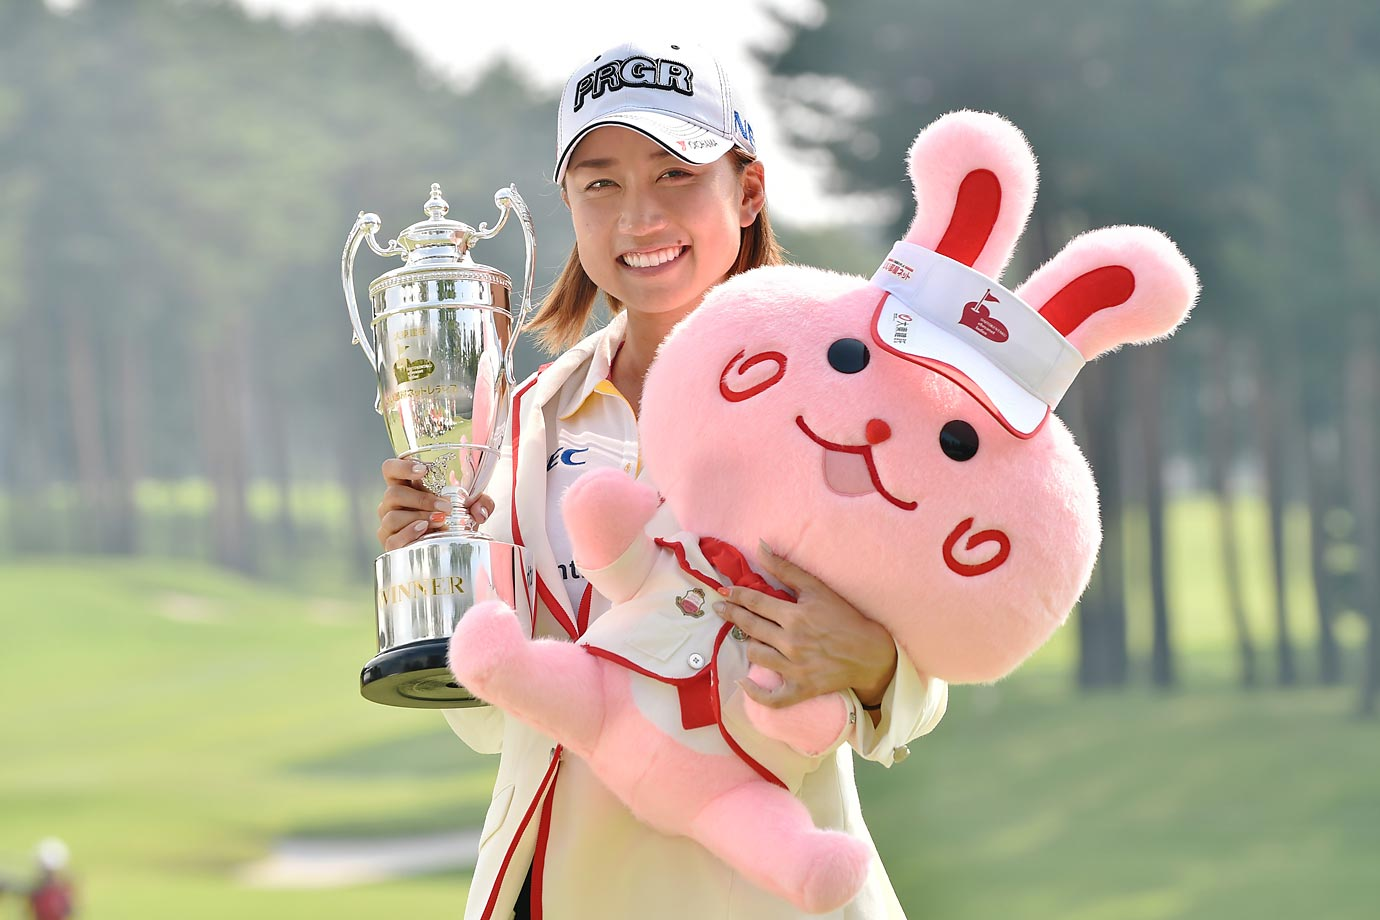 Erina Hara of Japan poses with the trophy after winning the Daito Kentaku Eheyanet Ladies 2015 at the Narusawa Golf Club.